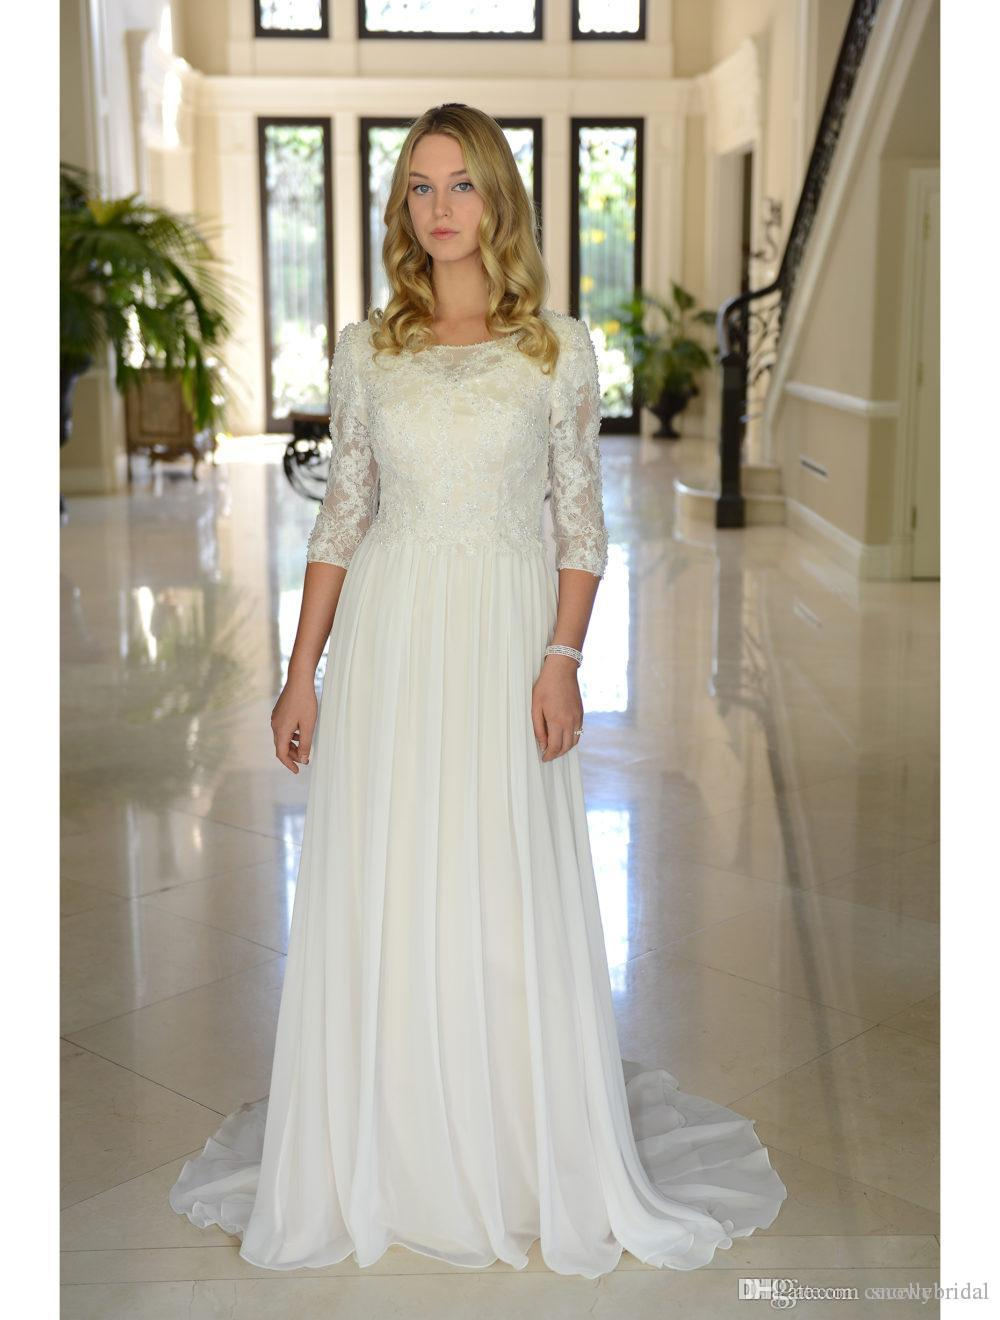 61cf6485176de Chiffon Boho Modest Wedding Dresses With 3/4 Sleeves Beaded Buttons Lace  Country Western Reception Bridal Gowns online A-line Custom Made